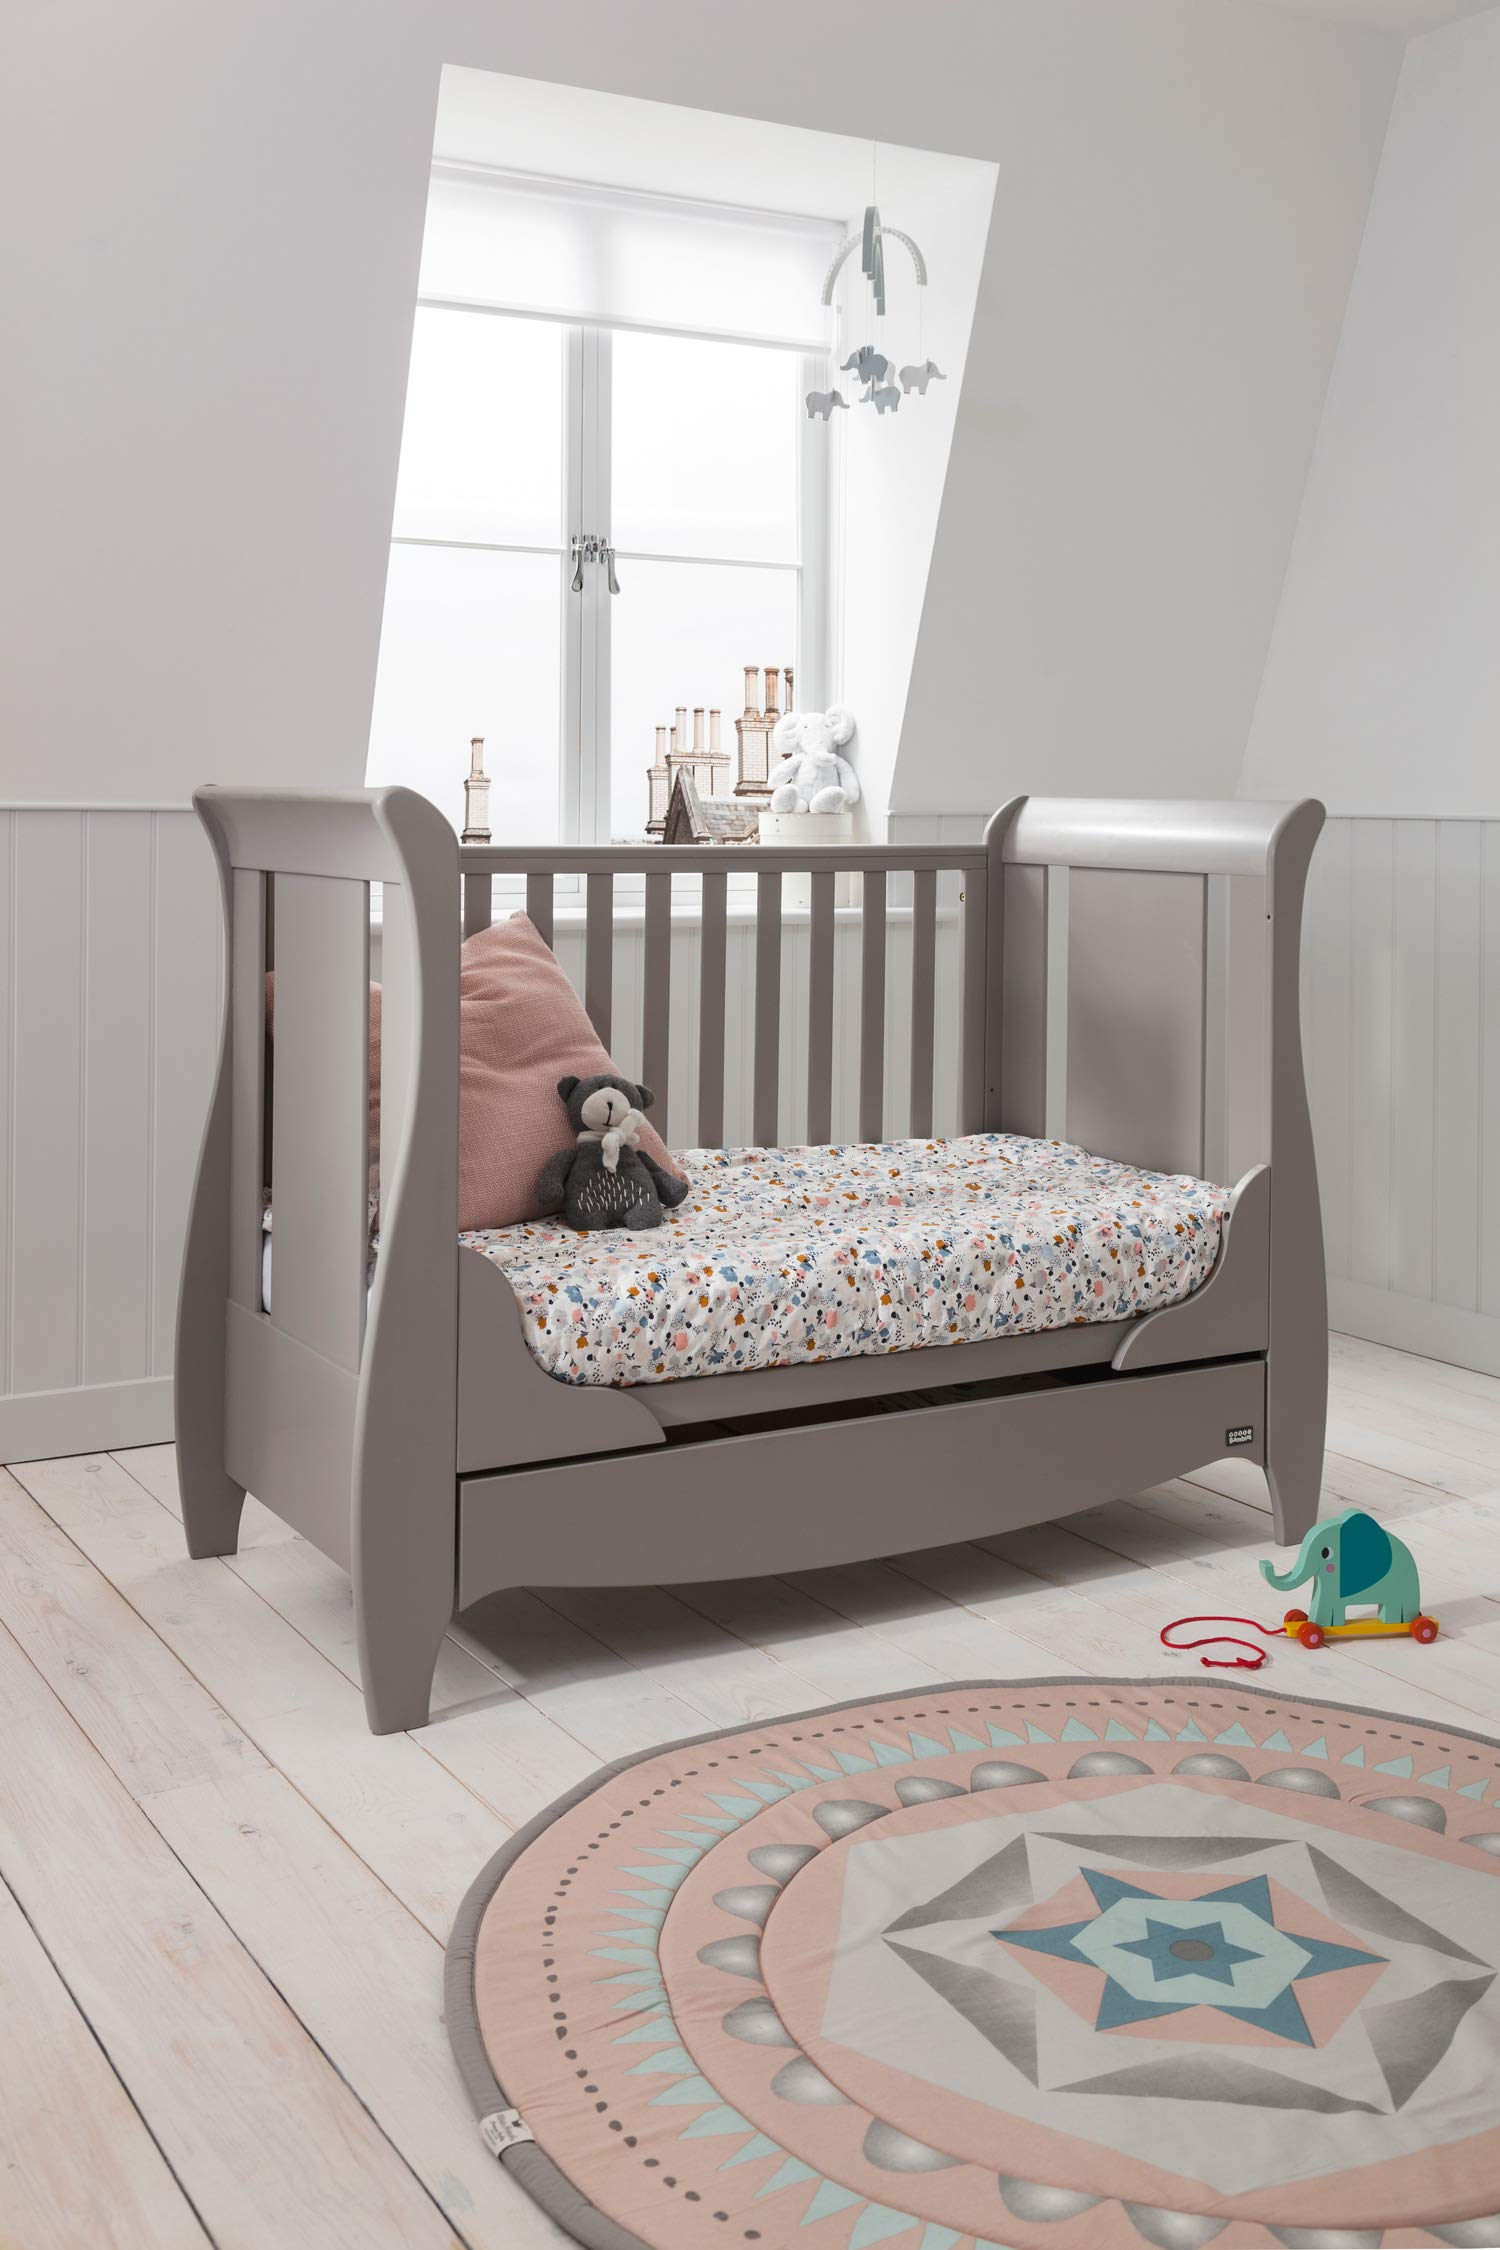 Tutti Bambini Roma Wooden Sleigh Cot Bed with Space Saver Under Bed Drawer - 120 x 60cm 3 Adjustable Positions (Truffle Grey) Tutti Bambini BIRTH TO 4 YEARS - Can be used as a Cot Bed from birth and then converted into a sofa or junior bed suitable up to 4 years ADJUSTABLE BASE - Three position adjustable mattress base, allowing easy access to little ones UNDER BED DRAWER - Classic sleigh design with under-bed drawer for extra storage, available in White or Espresso finish 5